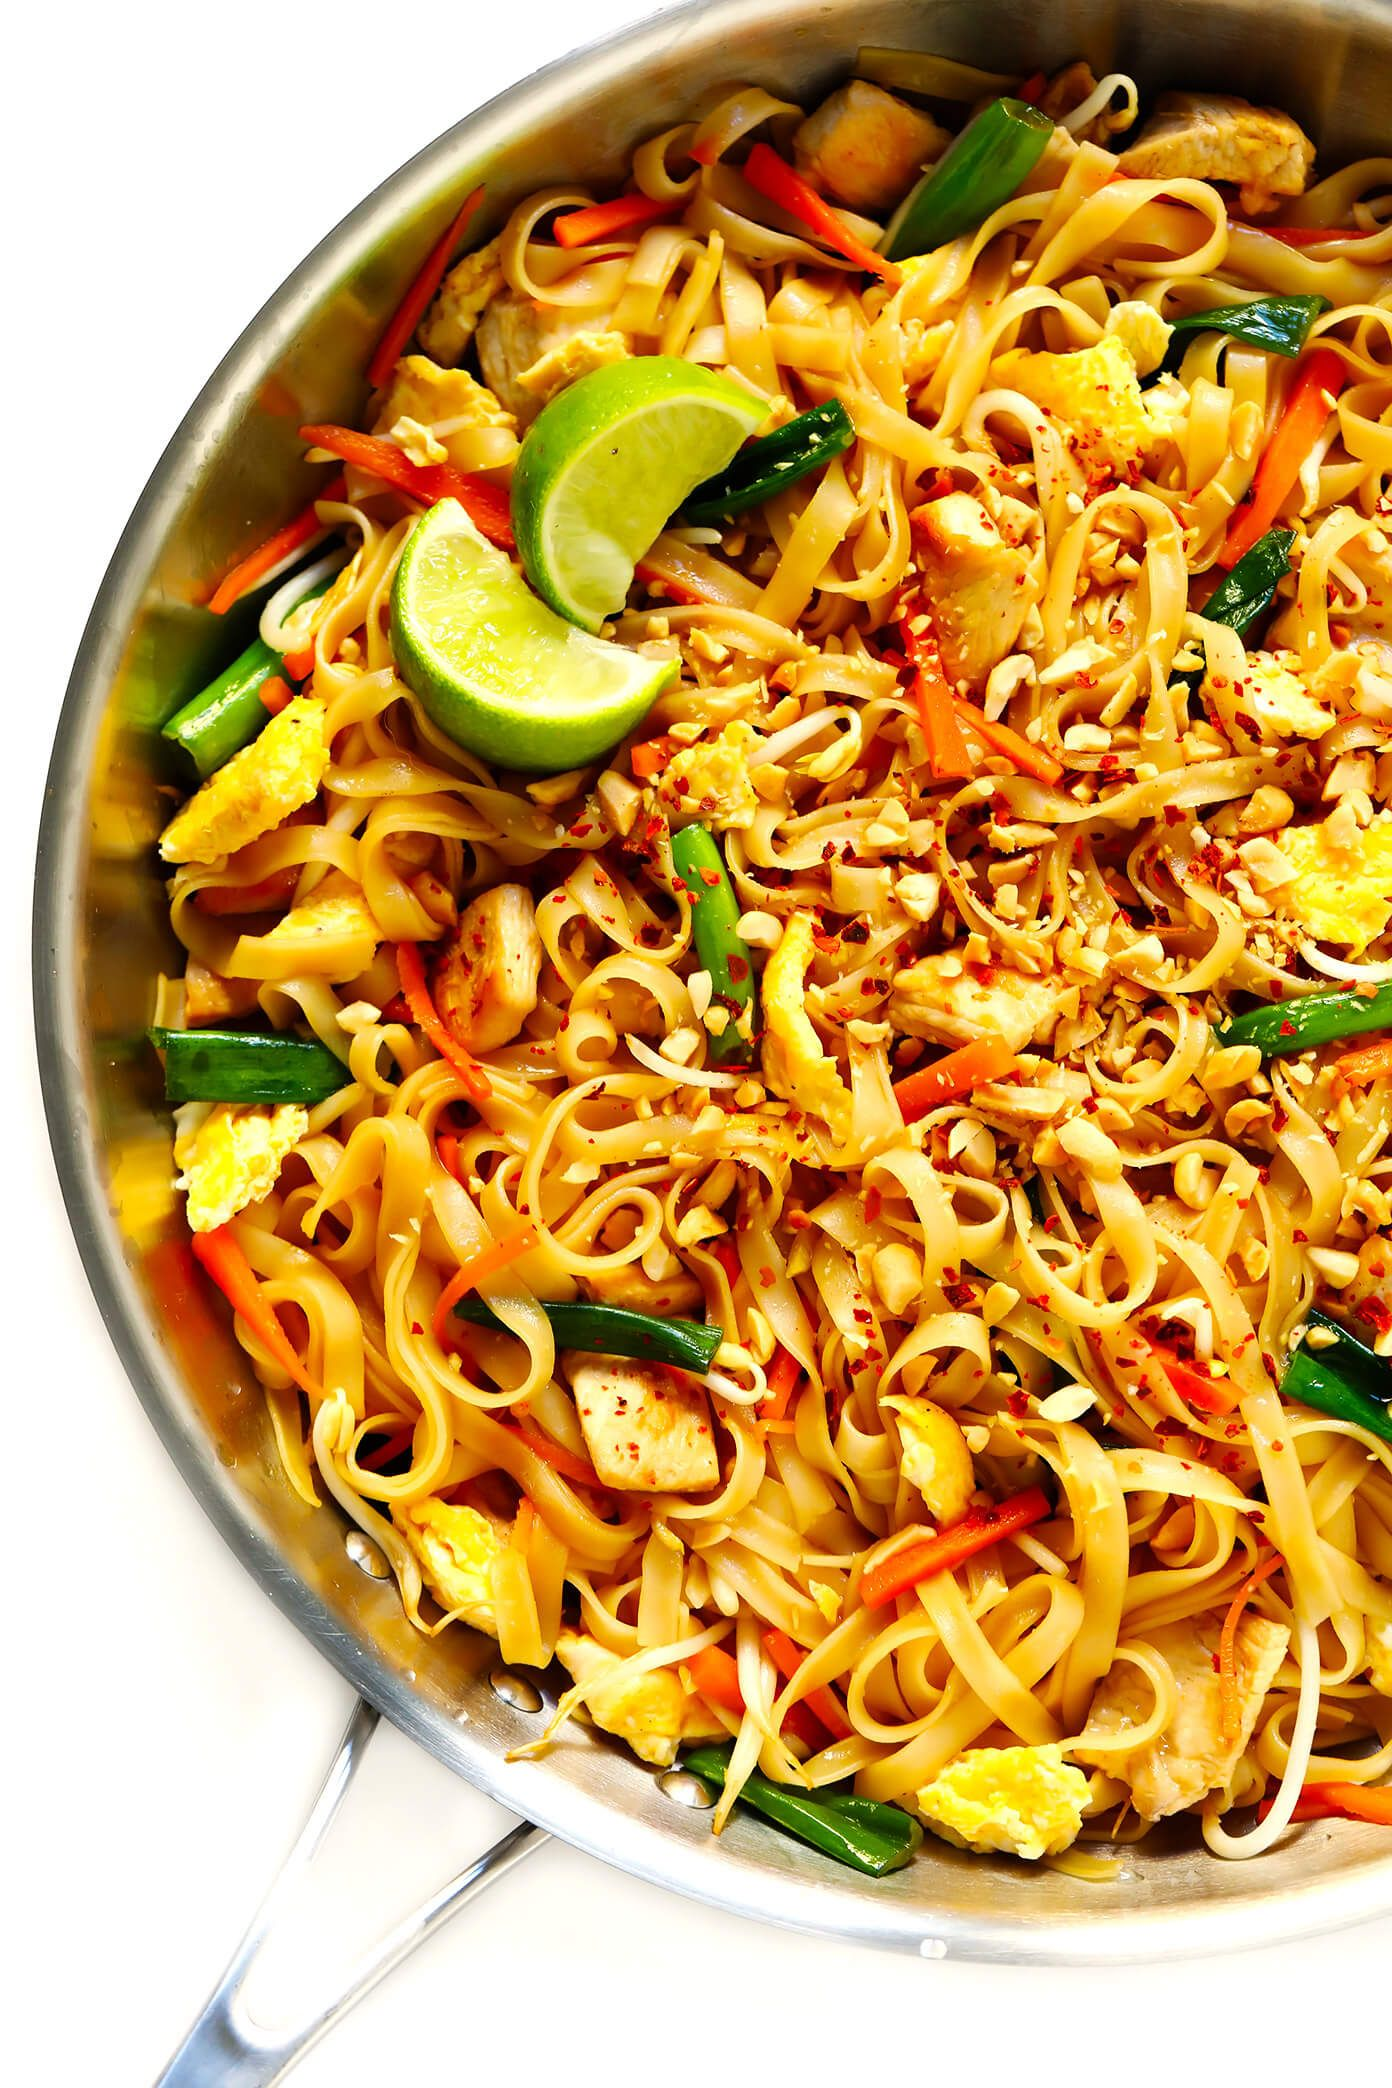 Pad Thai The BEST Pad Thai recipe! It's easy to make with either chicken, beef, pork, shrimp or vegetarian (with or without tofu), and tastes even better than the restaurant version! A delicious healthy dinner recipe that everyone will love. |